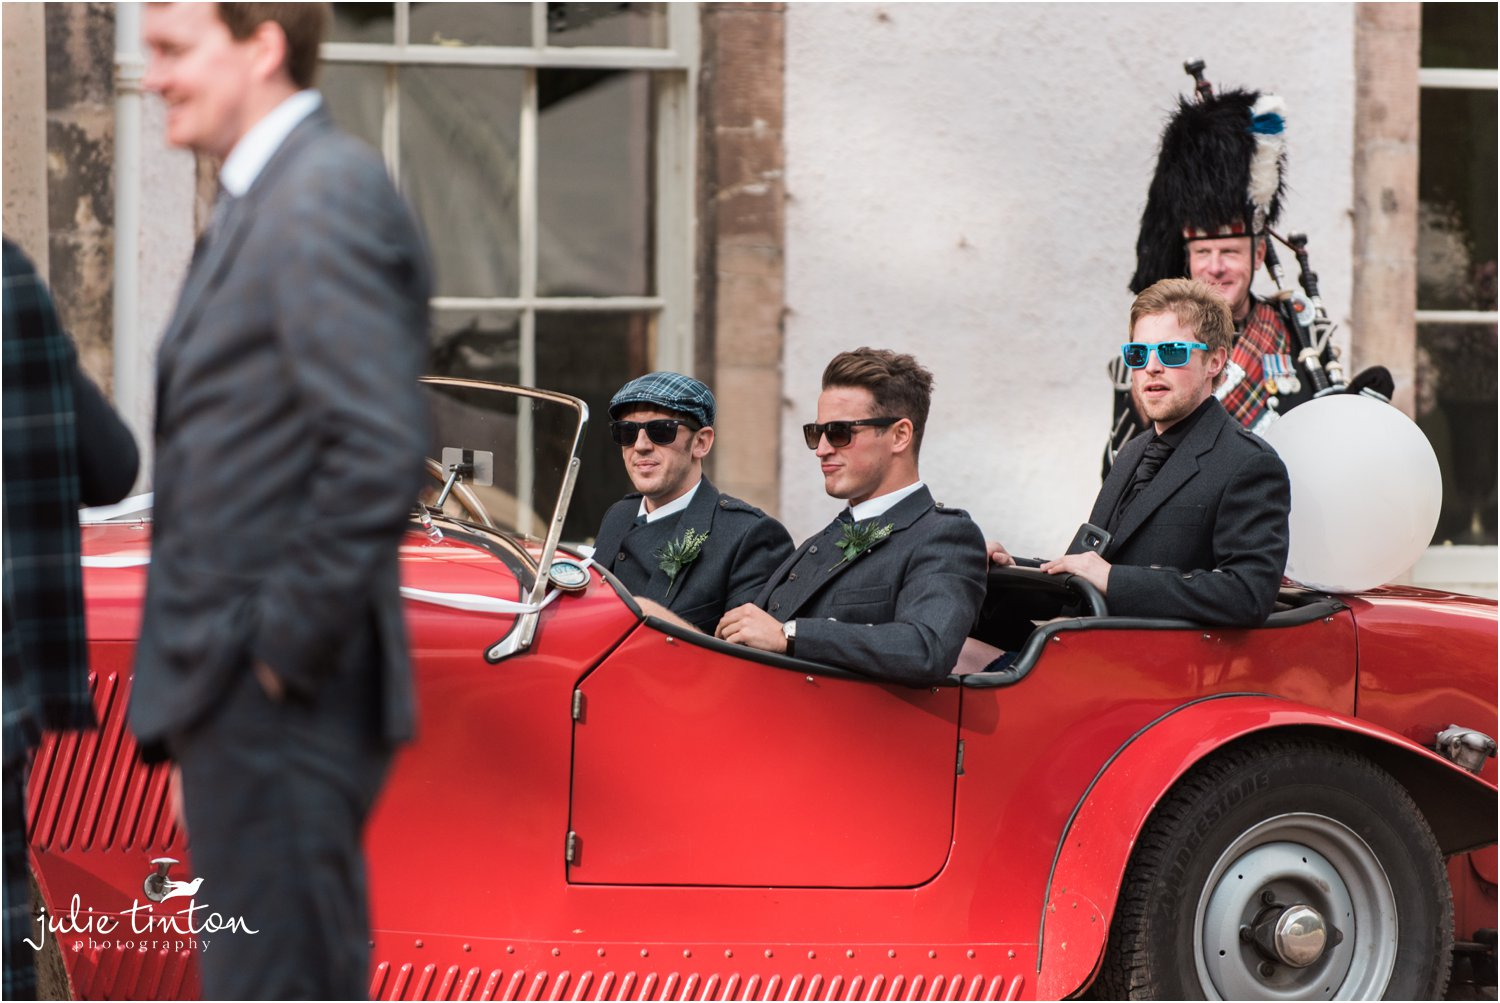 Groomsmen arrive at wedding in classic red car